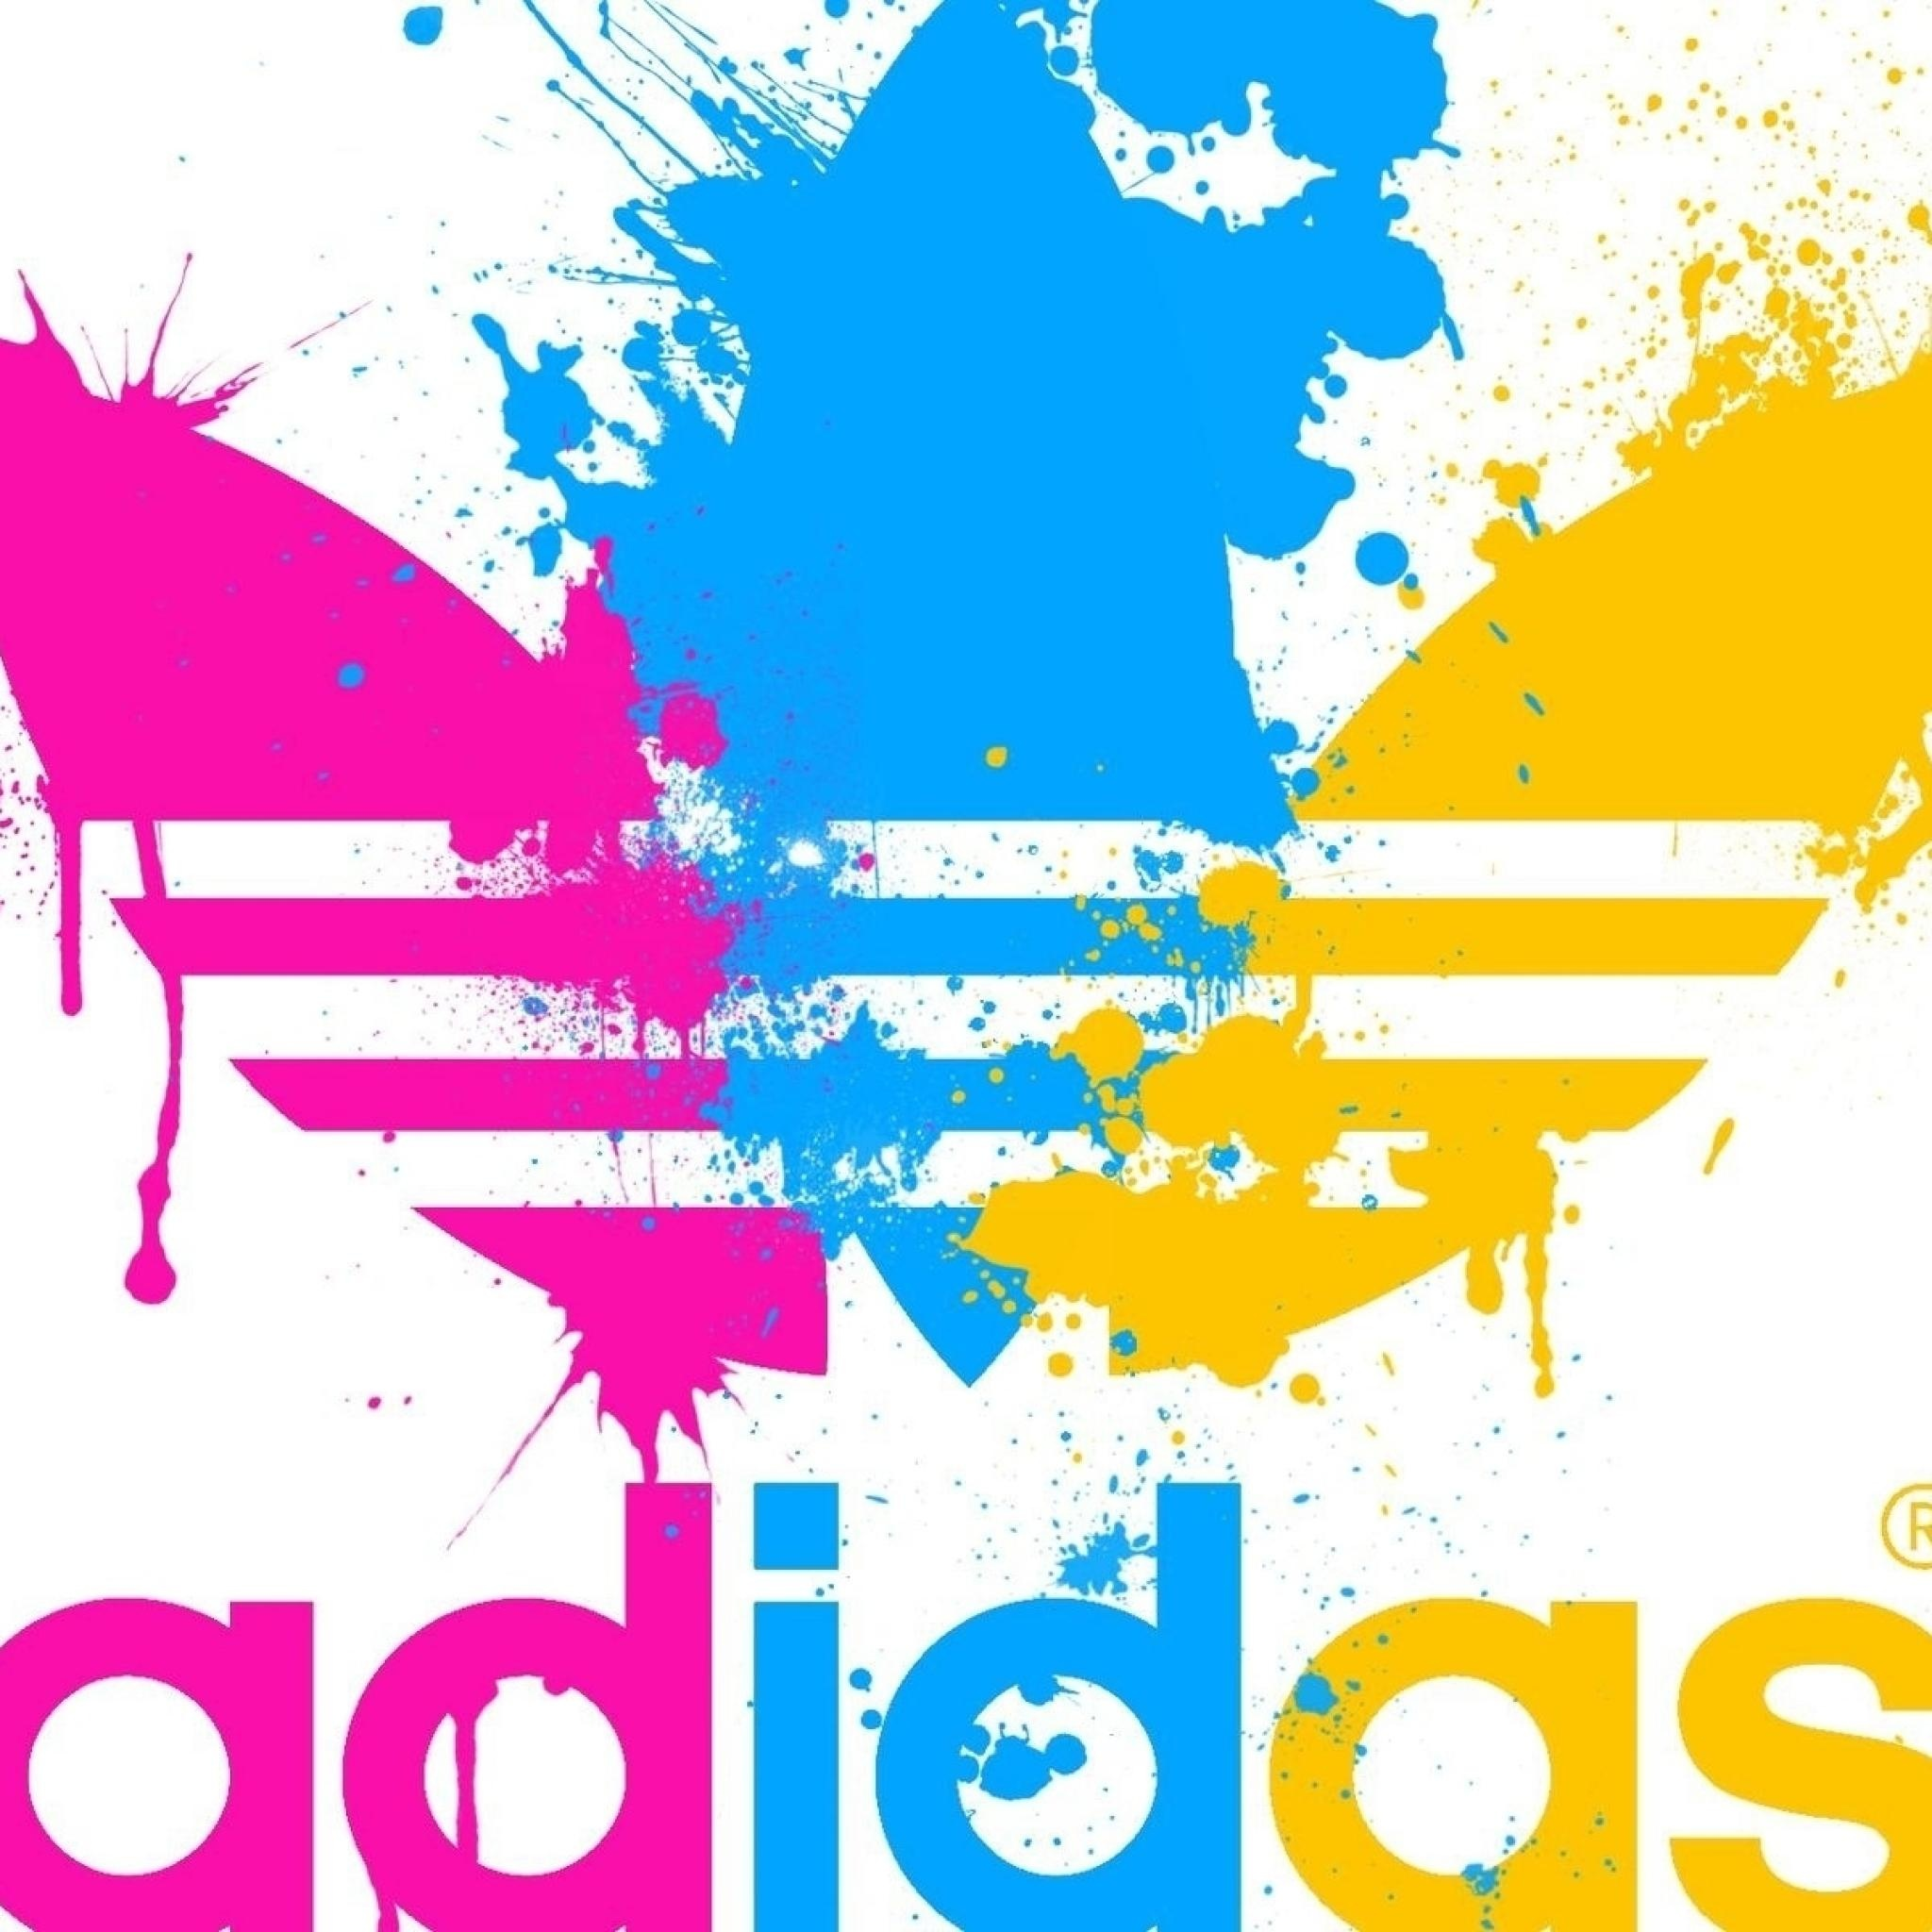 Adidas-Colored-Logo-Ipad-wallpaper-wallpaper-wp4803932